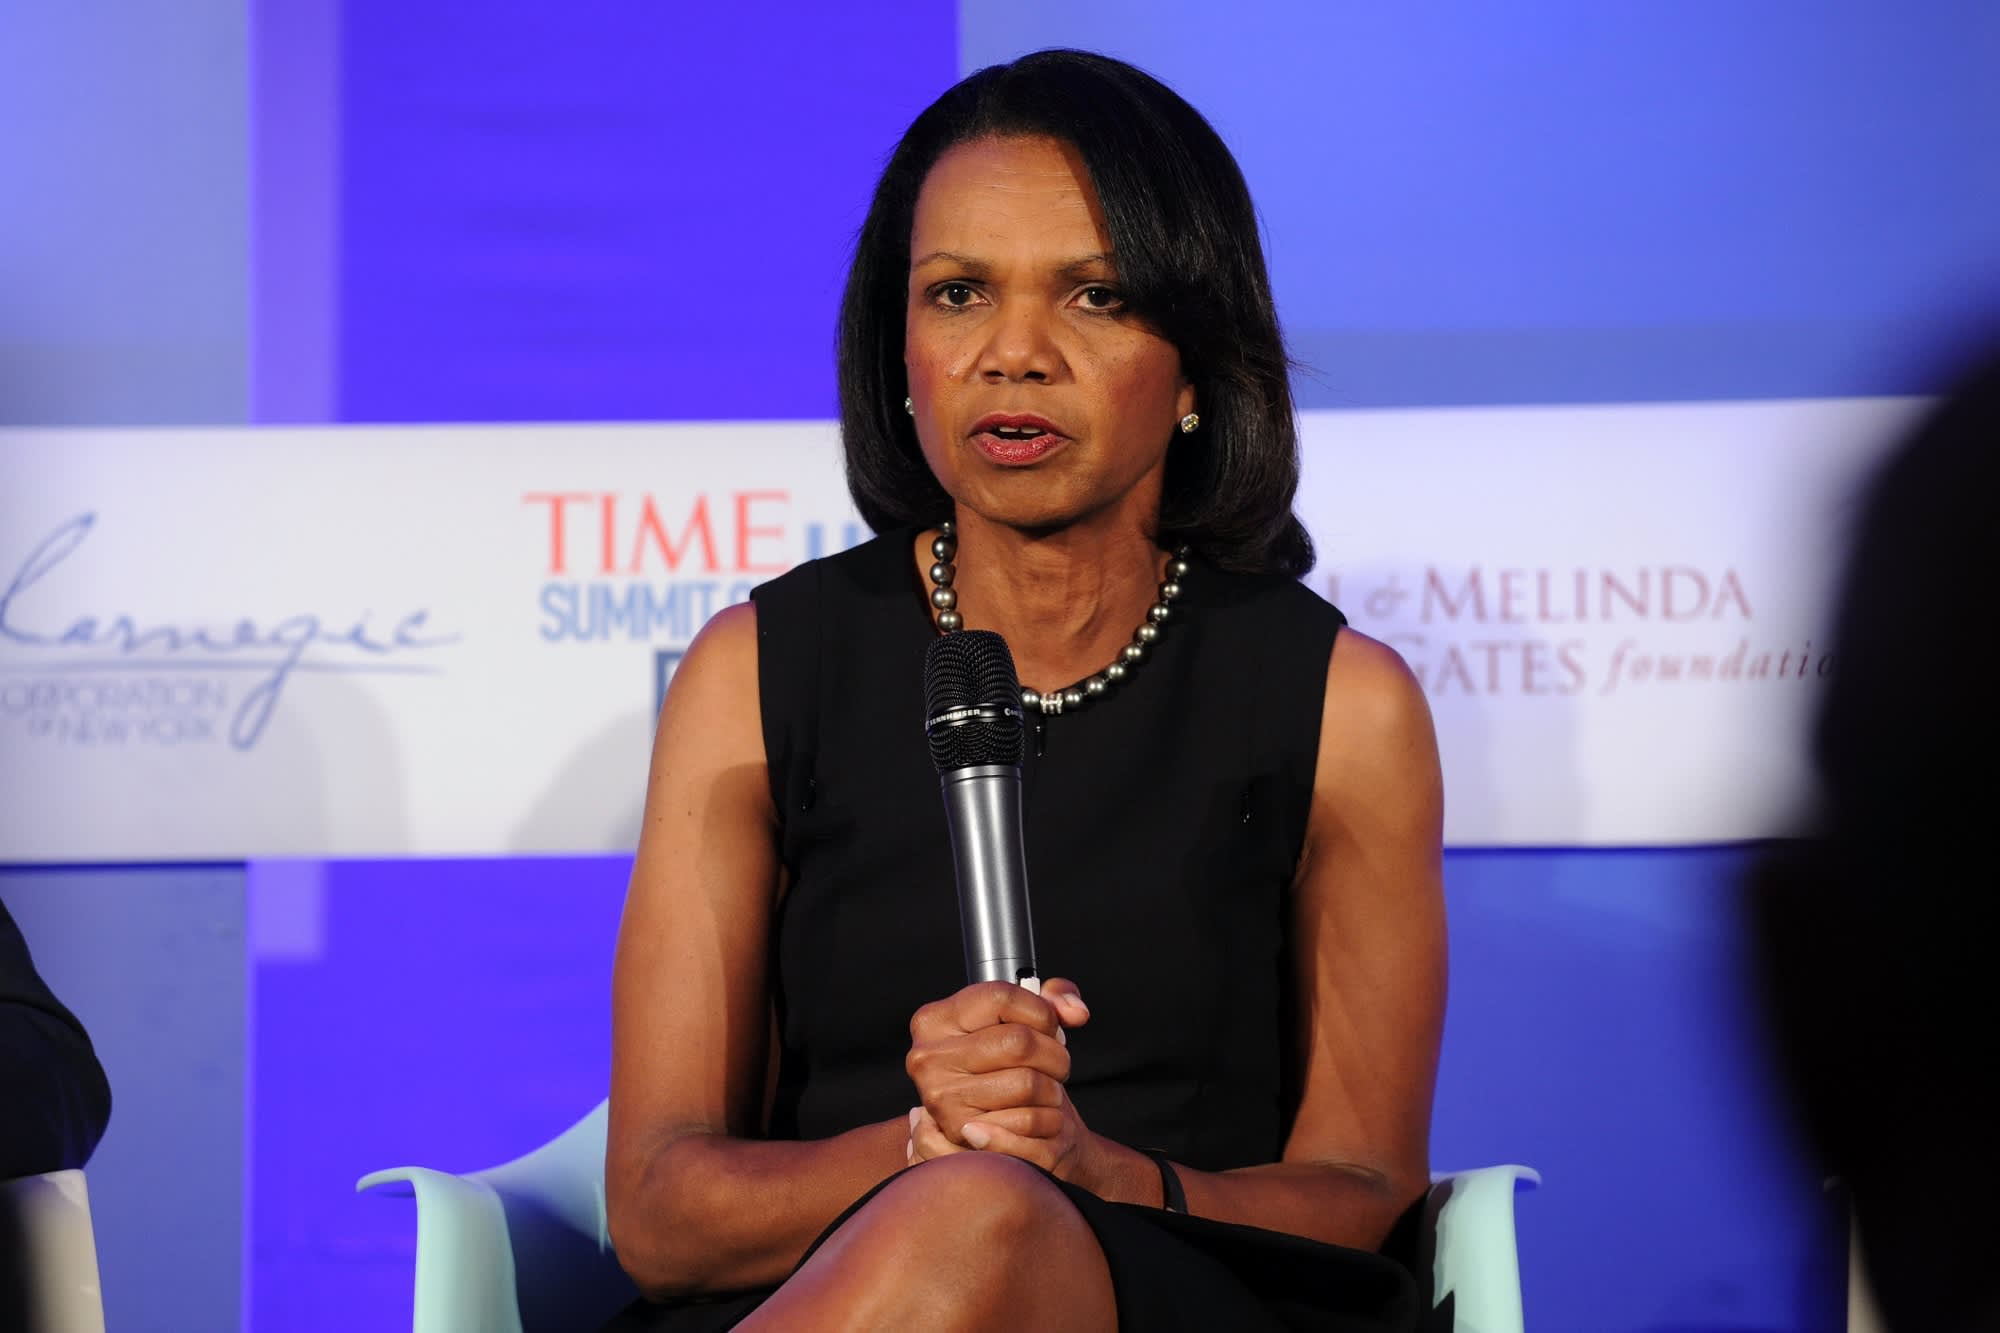 'The international system is somewhat dangerous and chaotic,' Condoleezza Rice warns